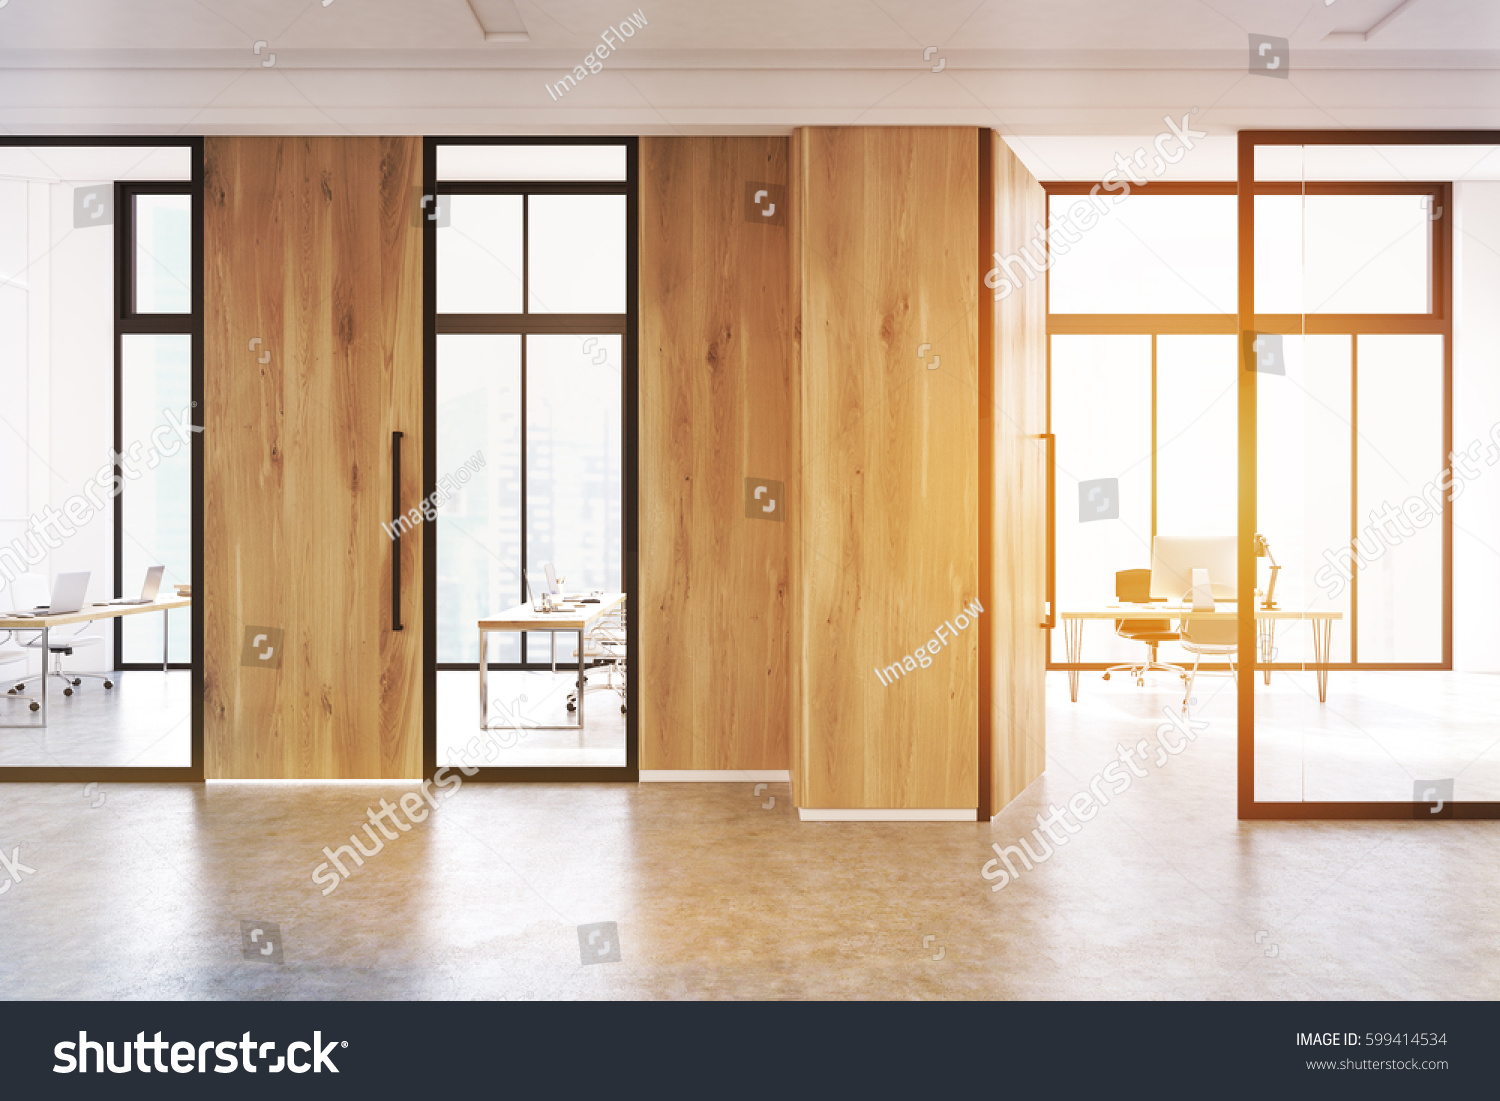 modern office door. Modern Office Lobby Interior With A Meeting Room Glass Walls. There Is Wooden Door